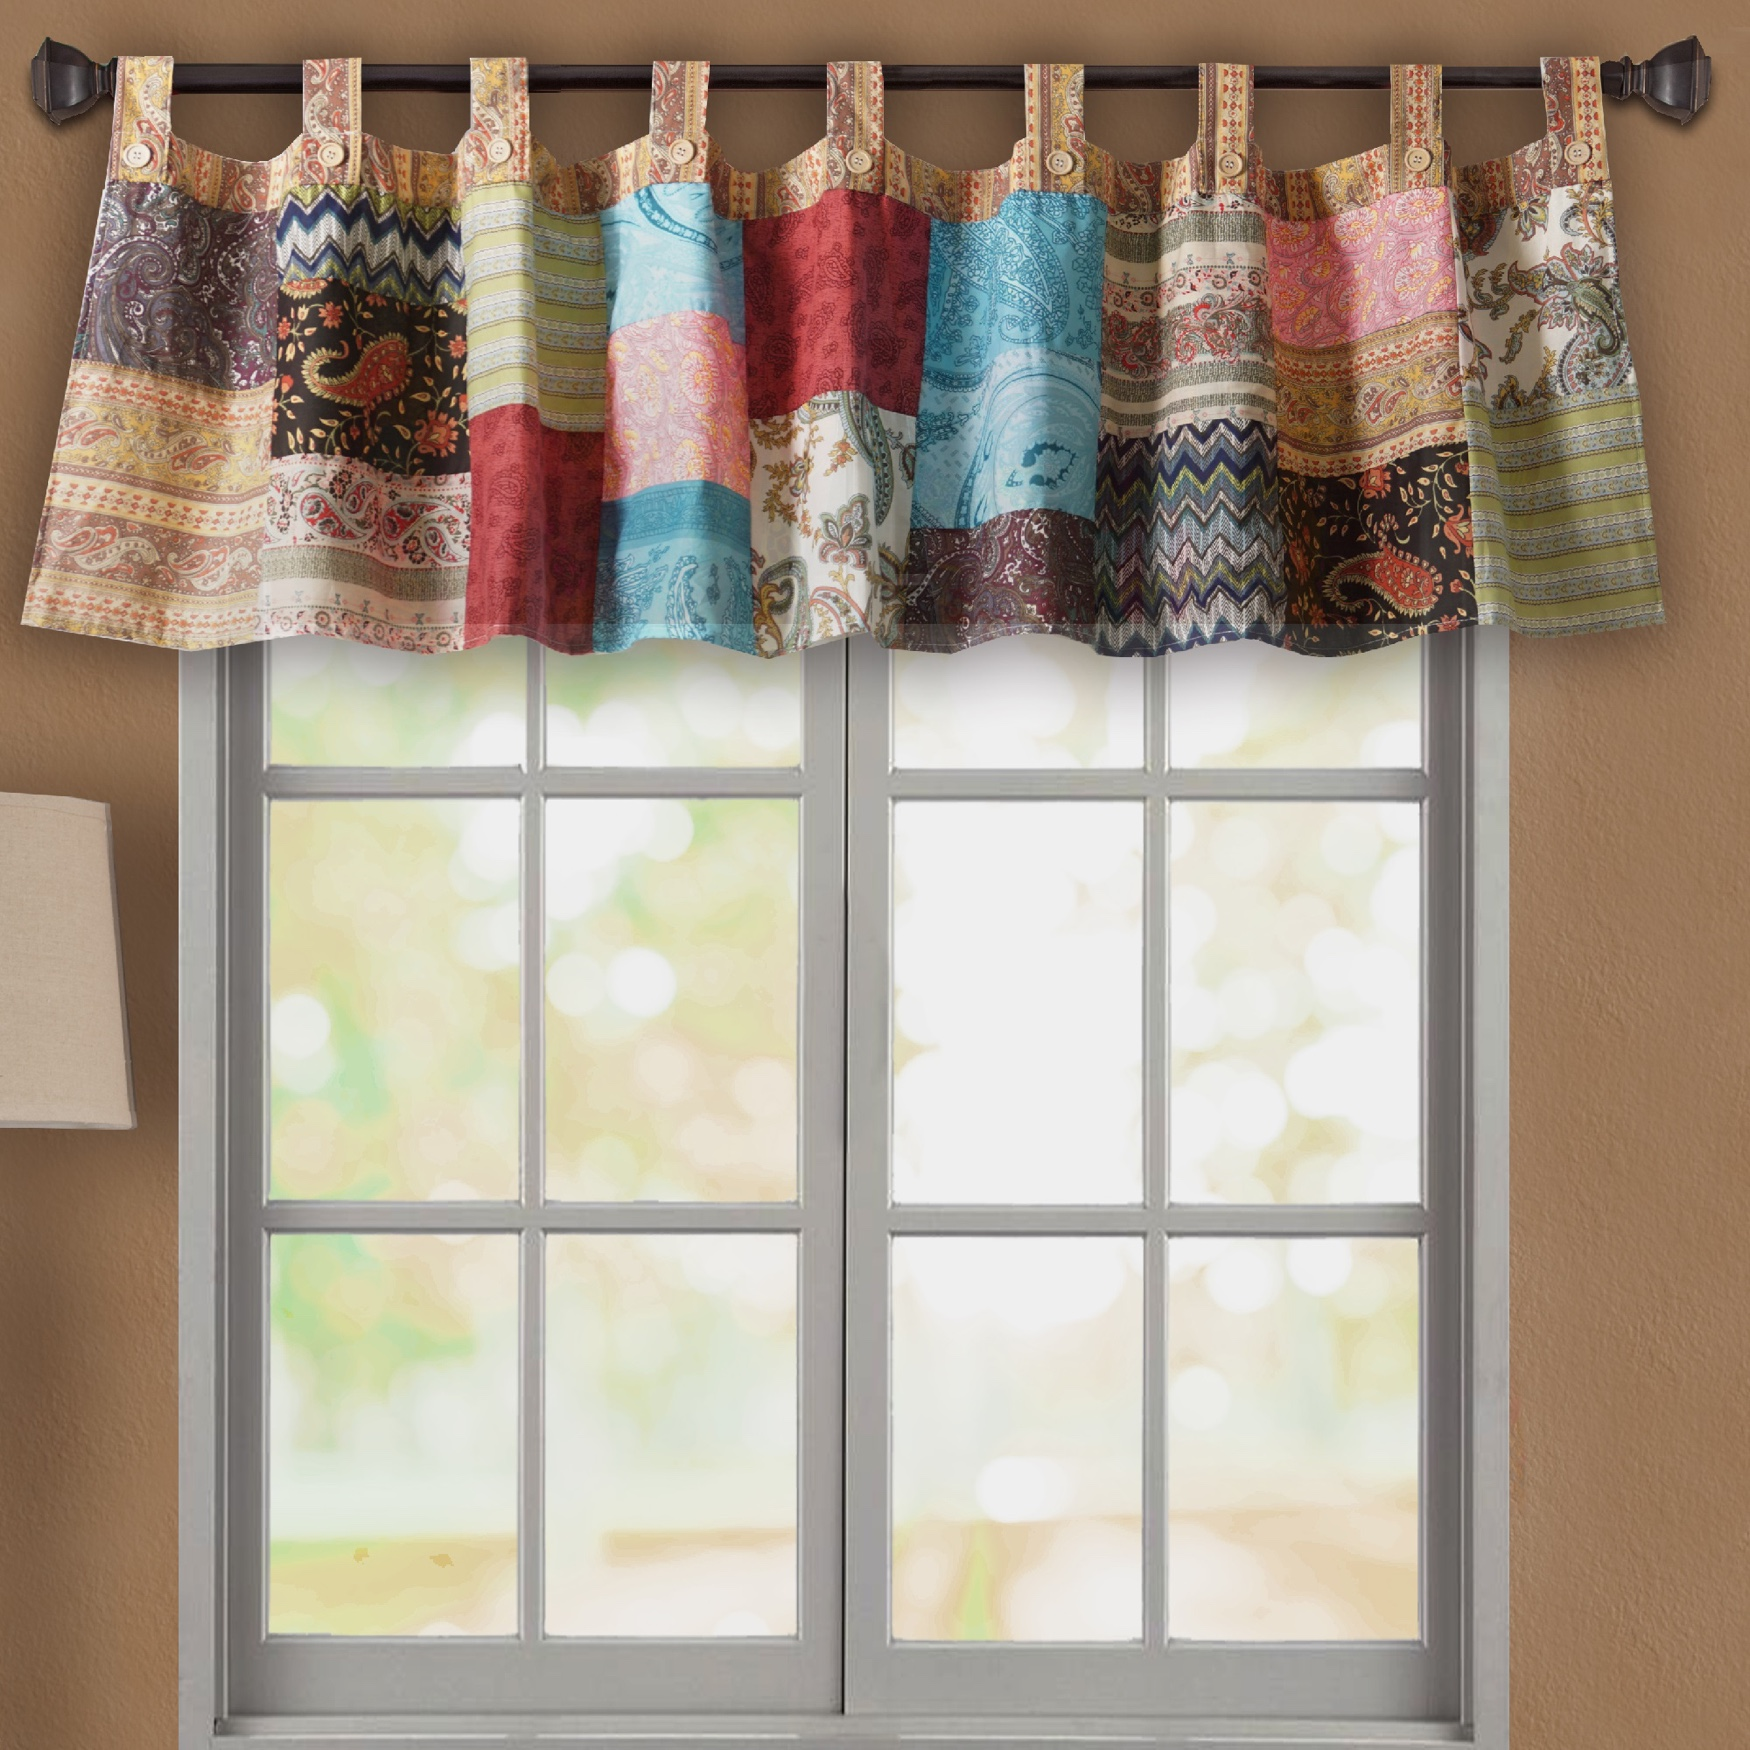 Bohemian Dream Window Valance by Greenland Home Fashions, MULTI